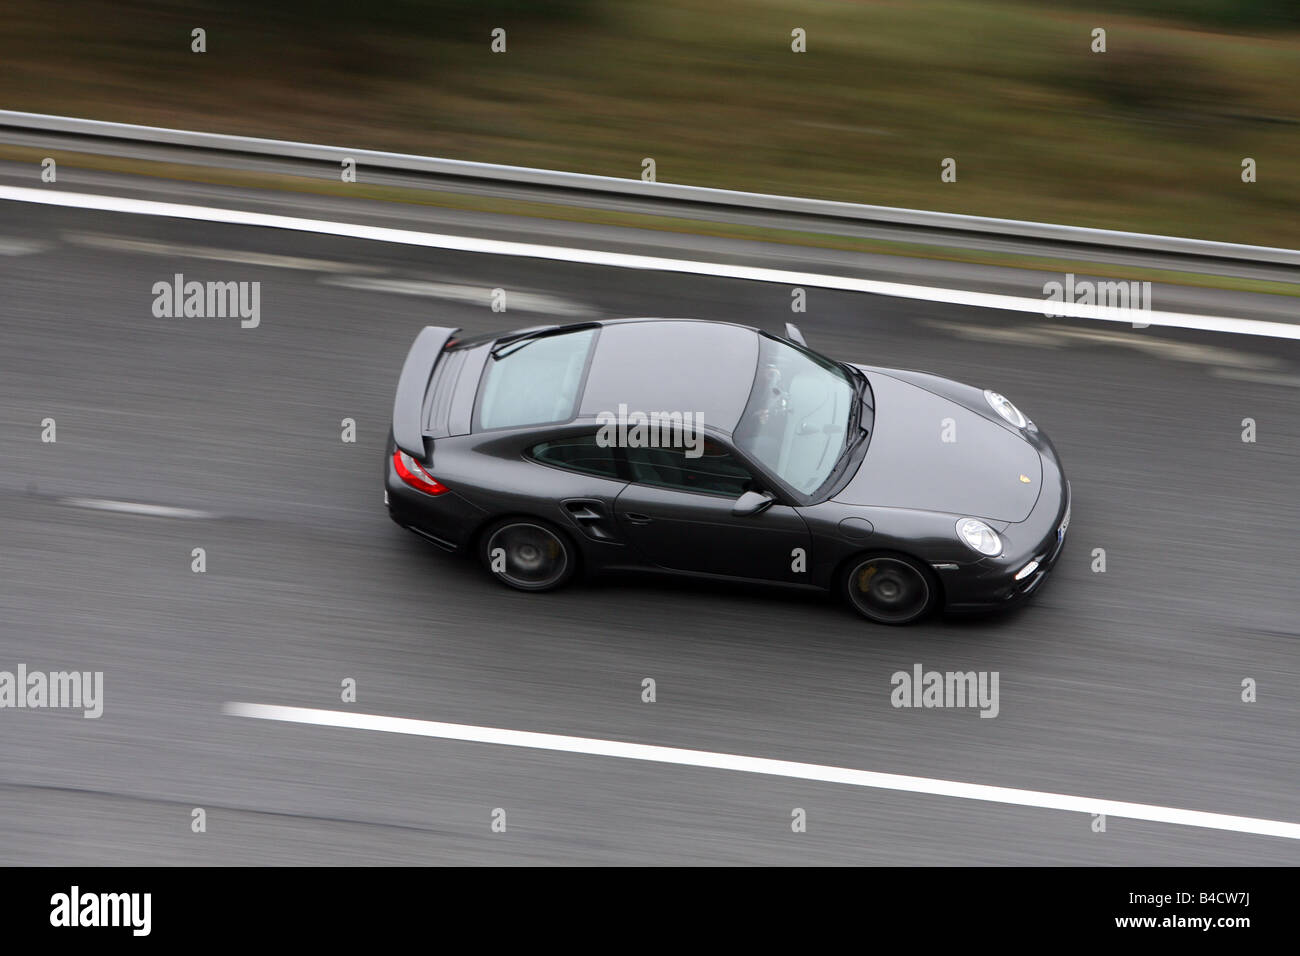 Porsche 911 Turbo, model year 2006-, black, driving, side view, test track - Stock Image